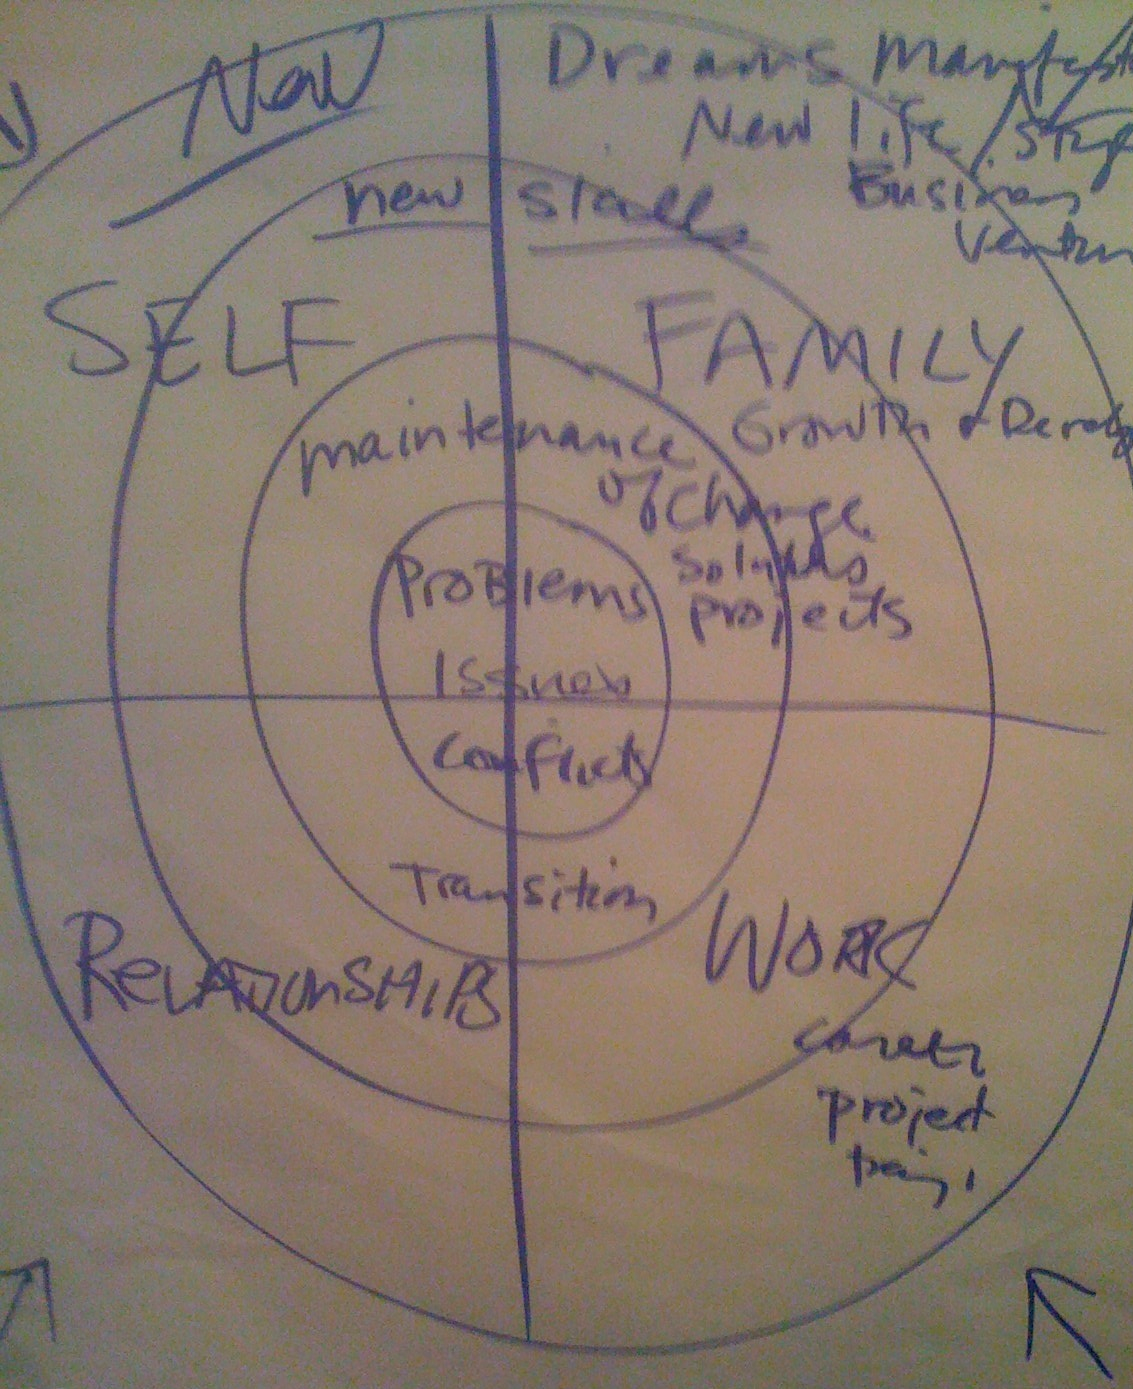 The Four Quadrants that make up Lynne's Psychotherapy & Coaching Practice. People enter through any quadrant.